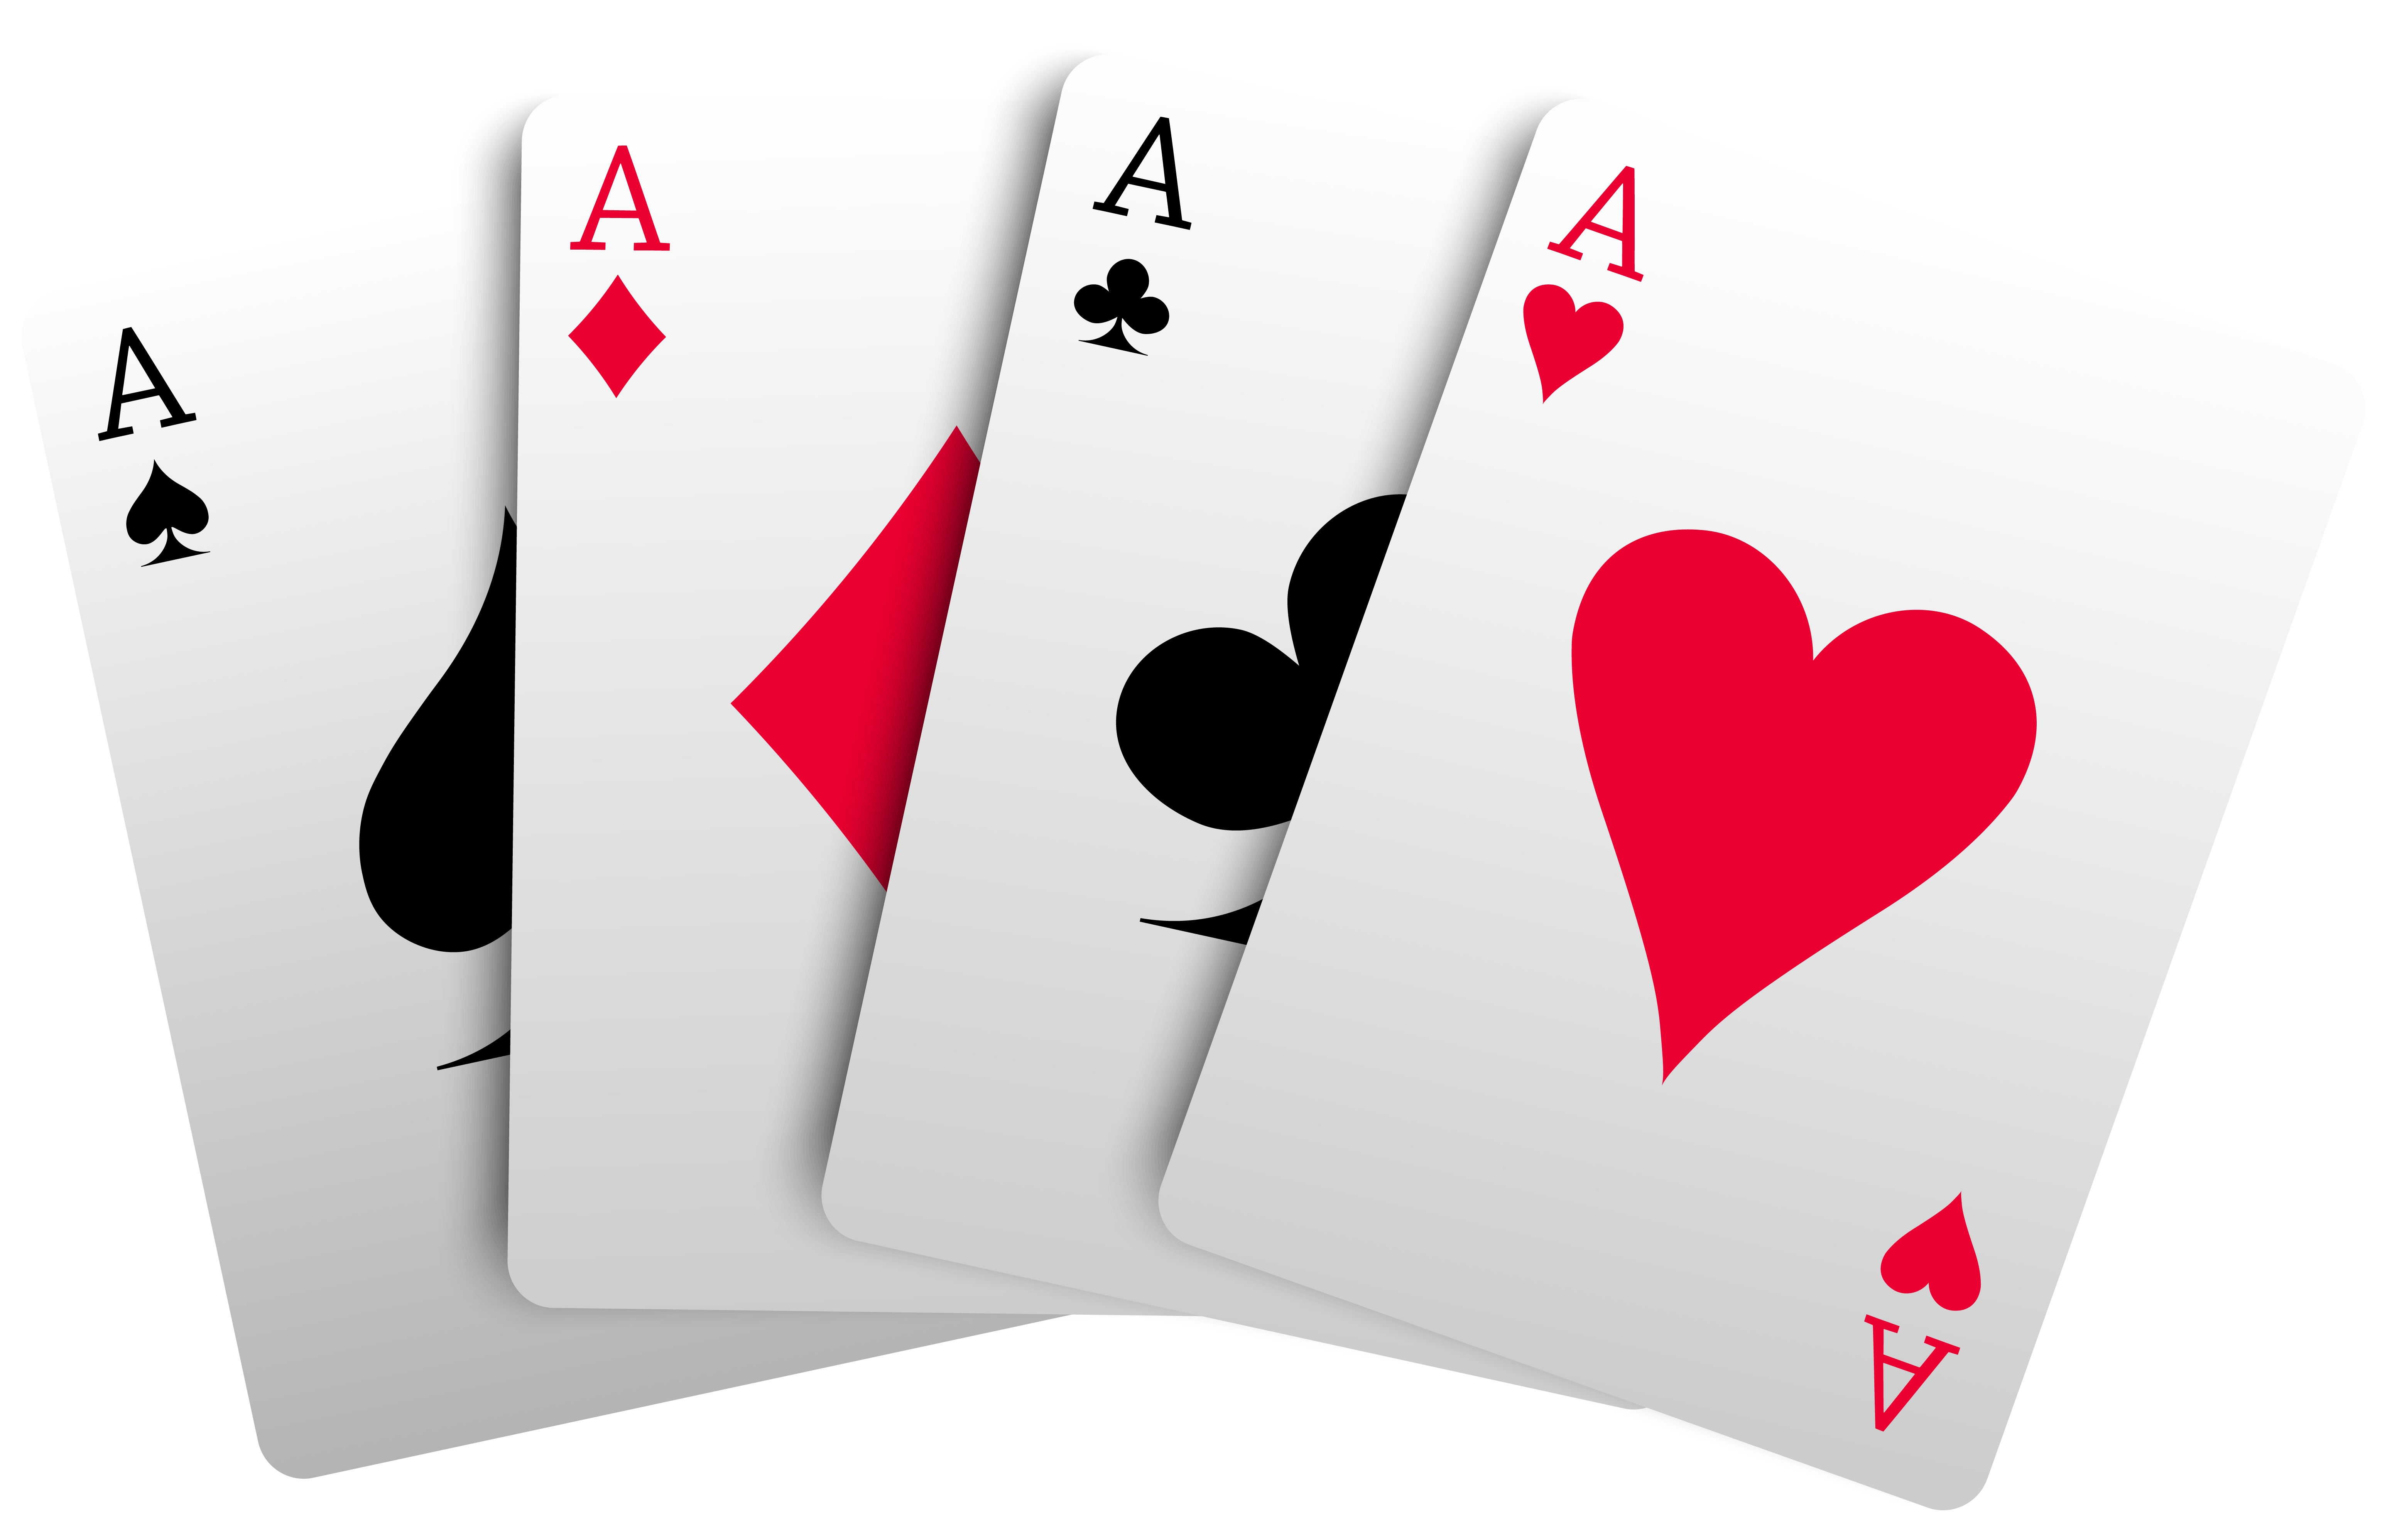 clip free download  aces png best. Cards clipart